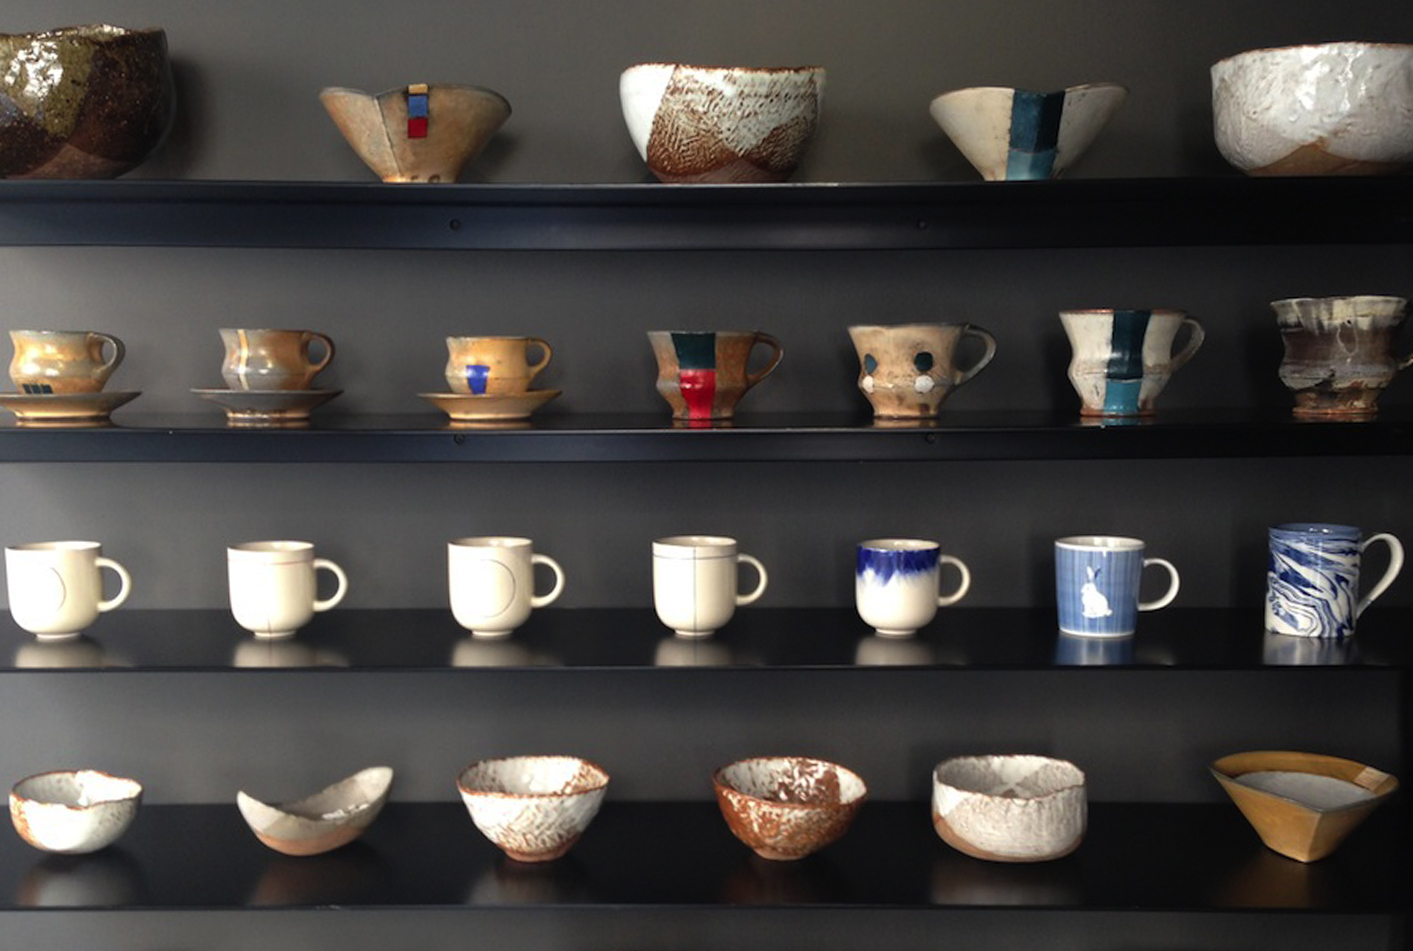 Shelves of ceramics at Everyday's good - Zolima CityMag